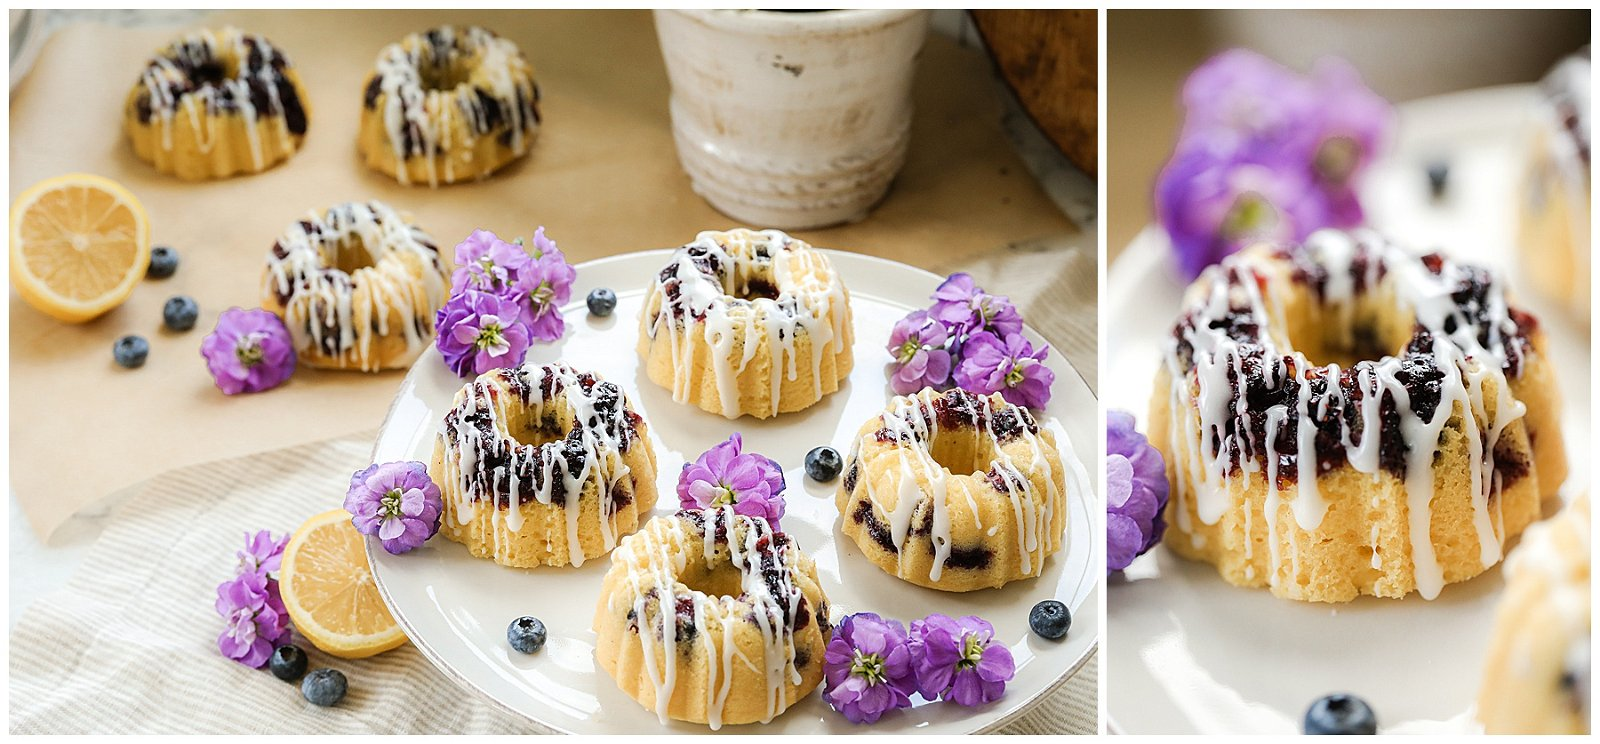 Mini Blueberry Lemon Bundt Cakes